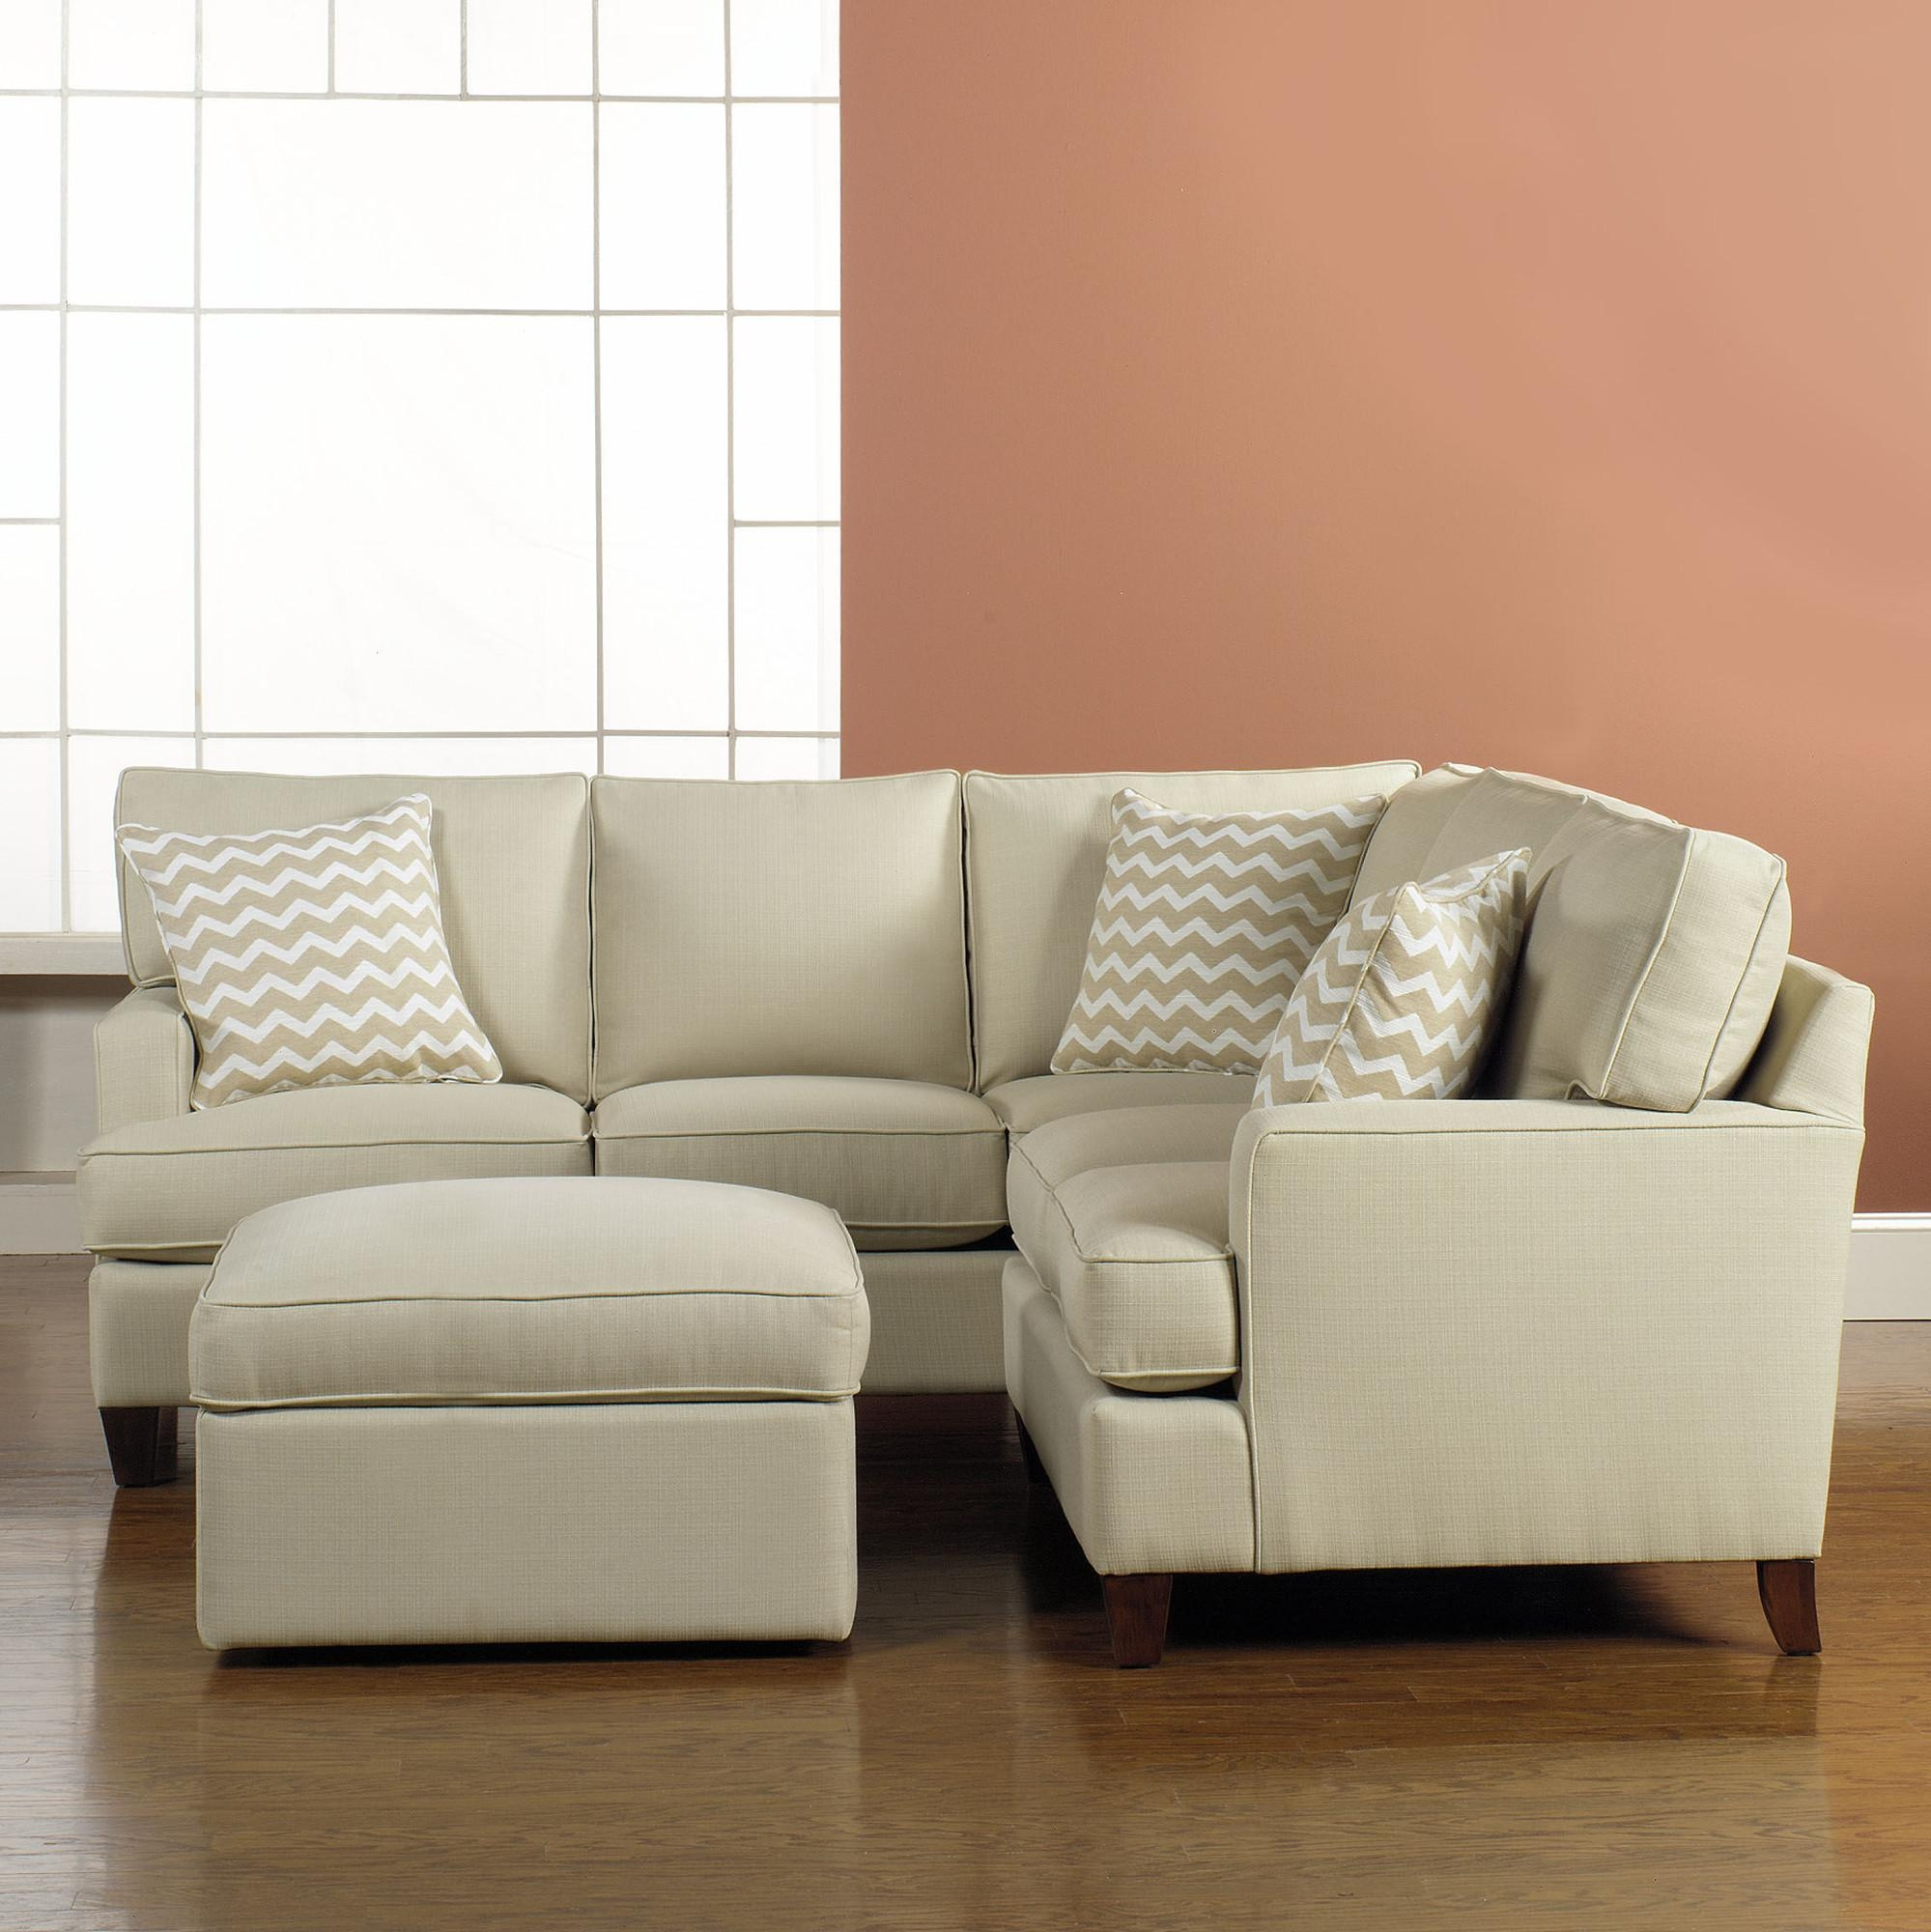 Small Space Sofas Top 10 Contemporary Sofas For Small Spaces Pertaining To Sectional Sofas In Small Spaces (Image 17 of 20)